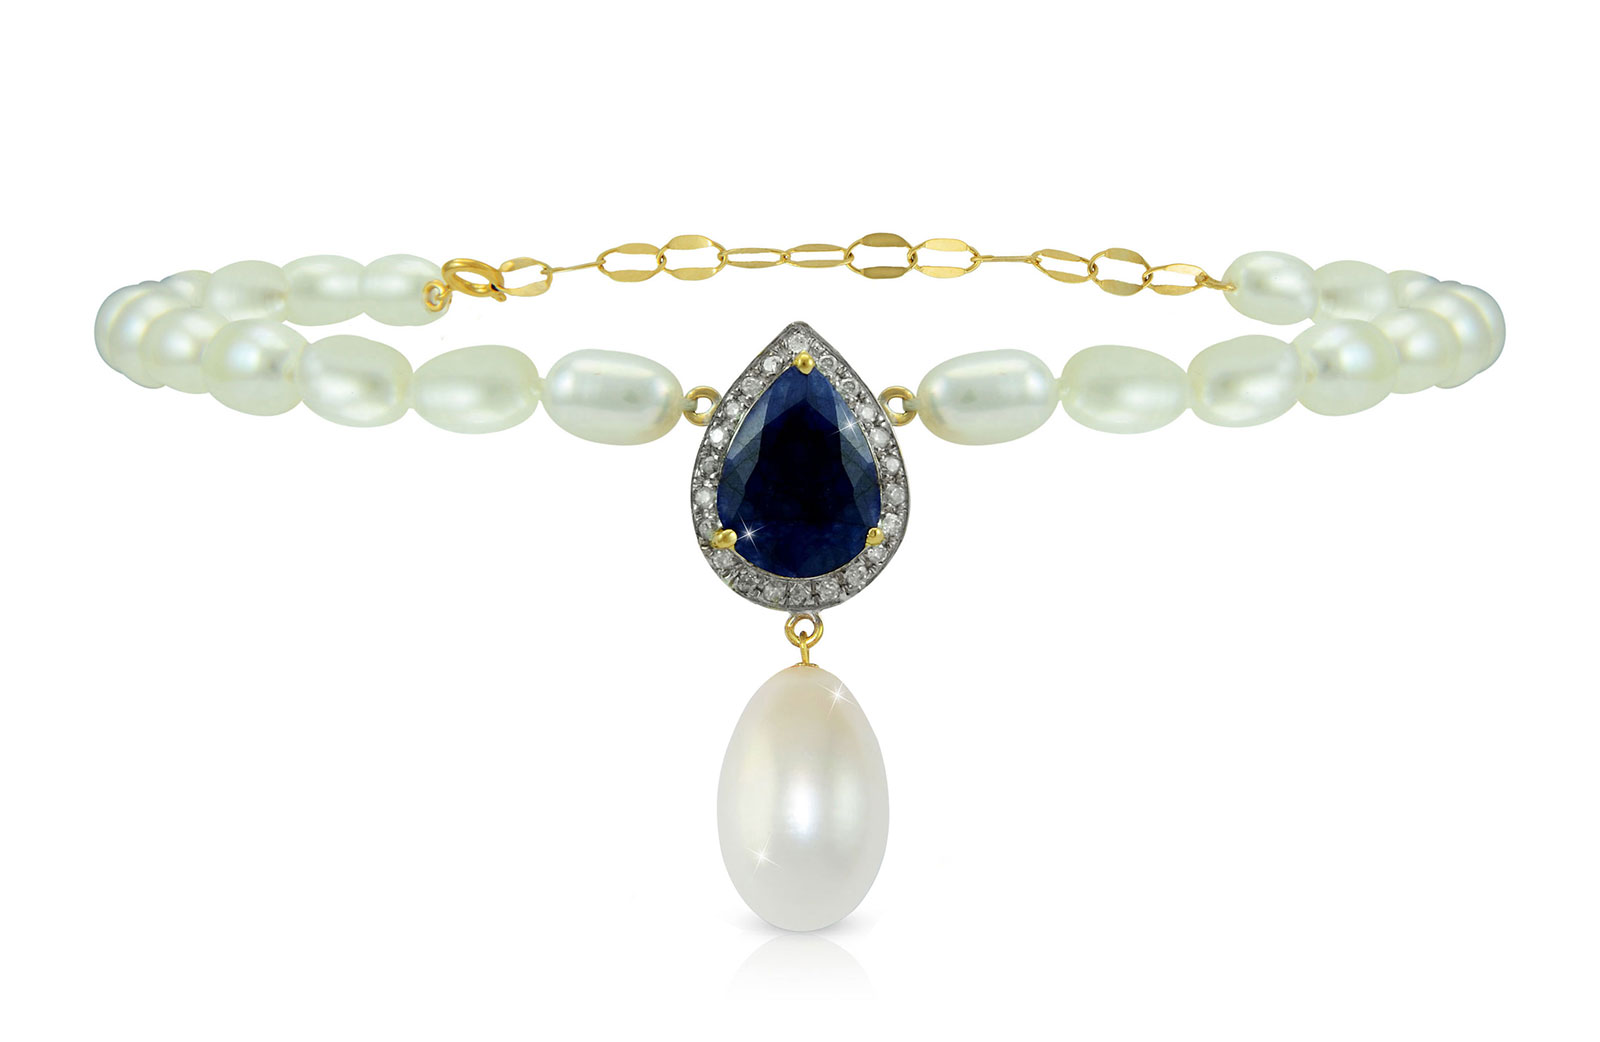 Vera Perla 18K Gold 0.12ct Diamonds, Royal Indian Sapphire and 13mm Pearl Bracelet